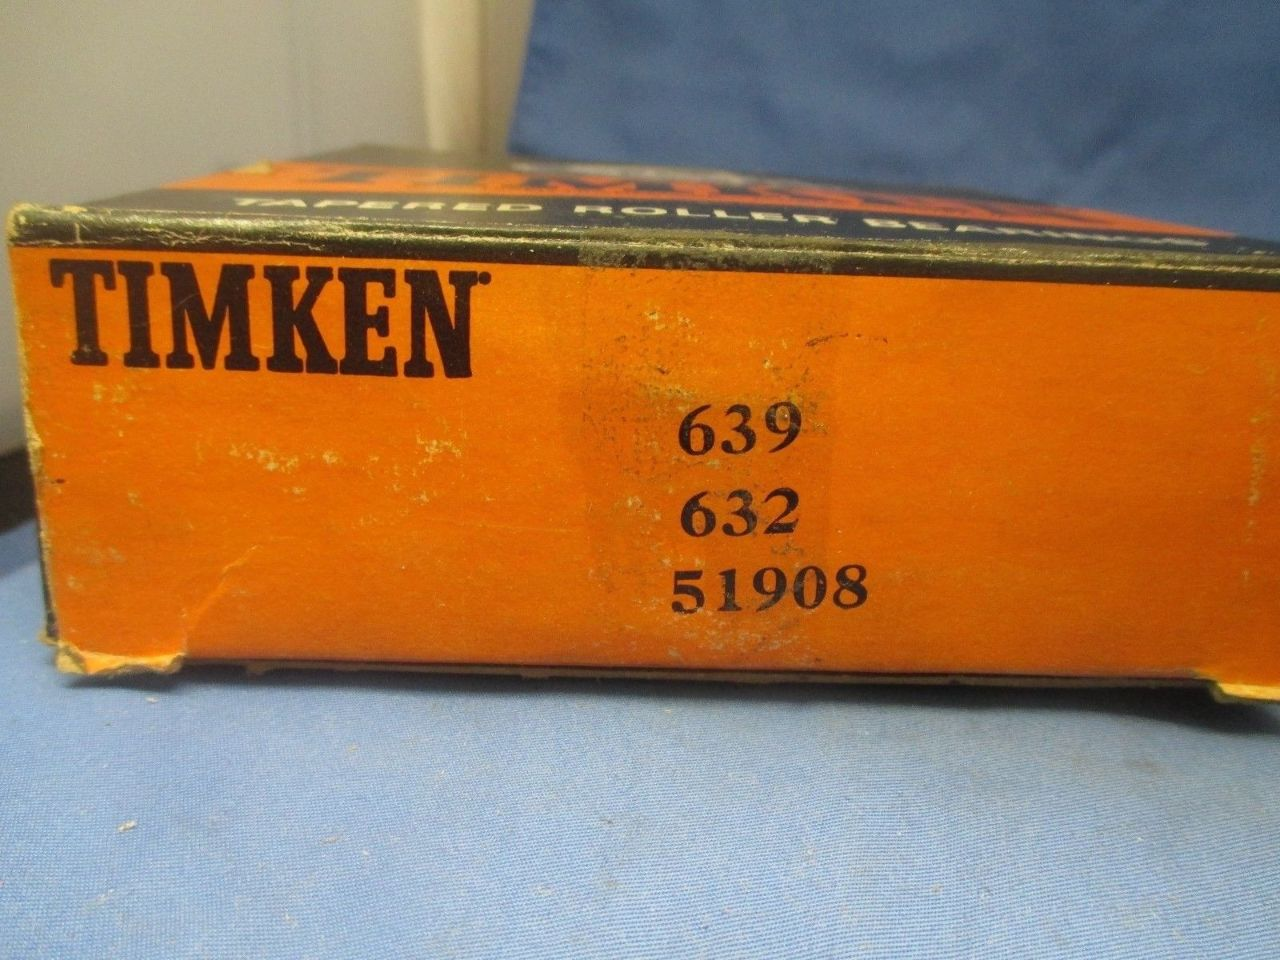 Timken 639 Tapered Roller Bearing Cone  NEW IN BOX